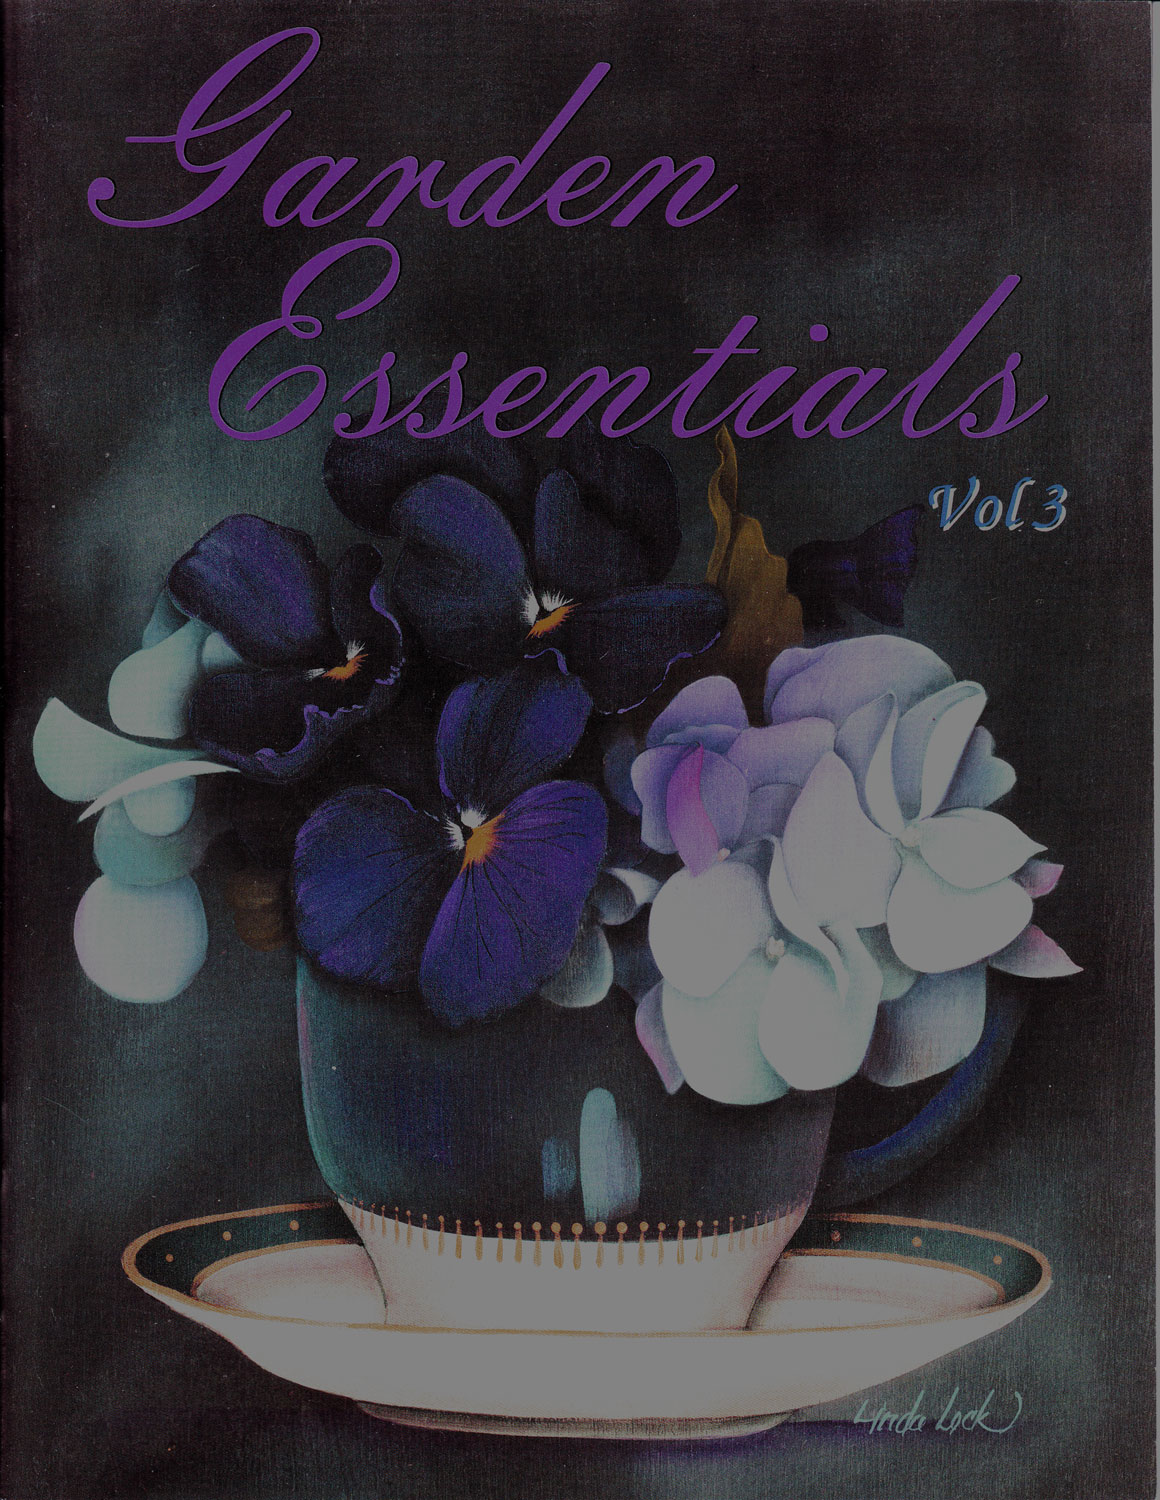 Garden essentials - Vol 3 - Linda Lock